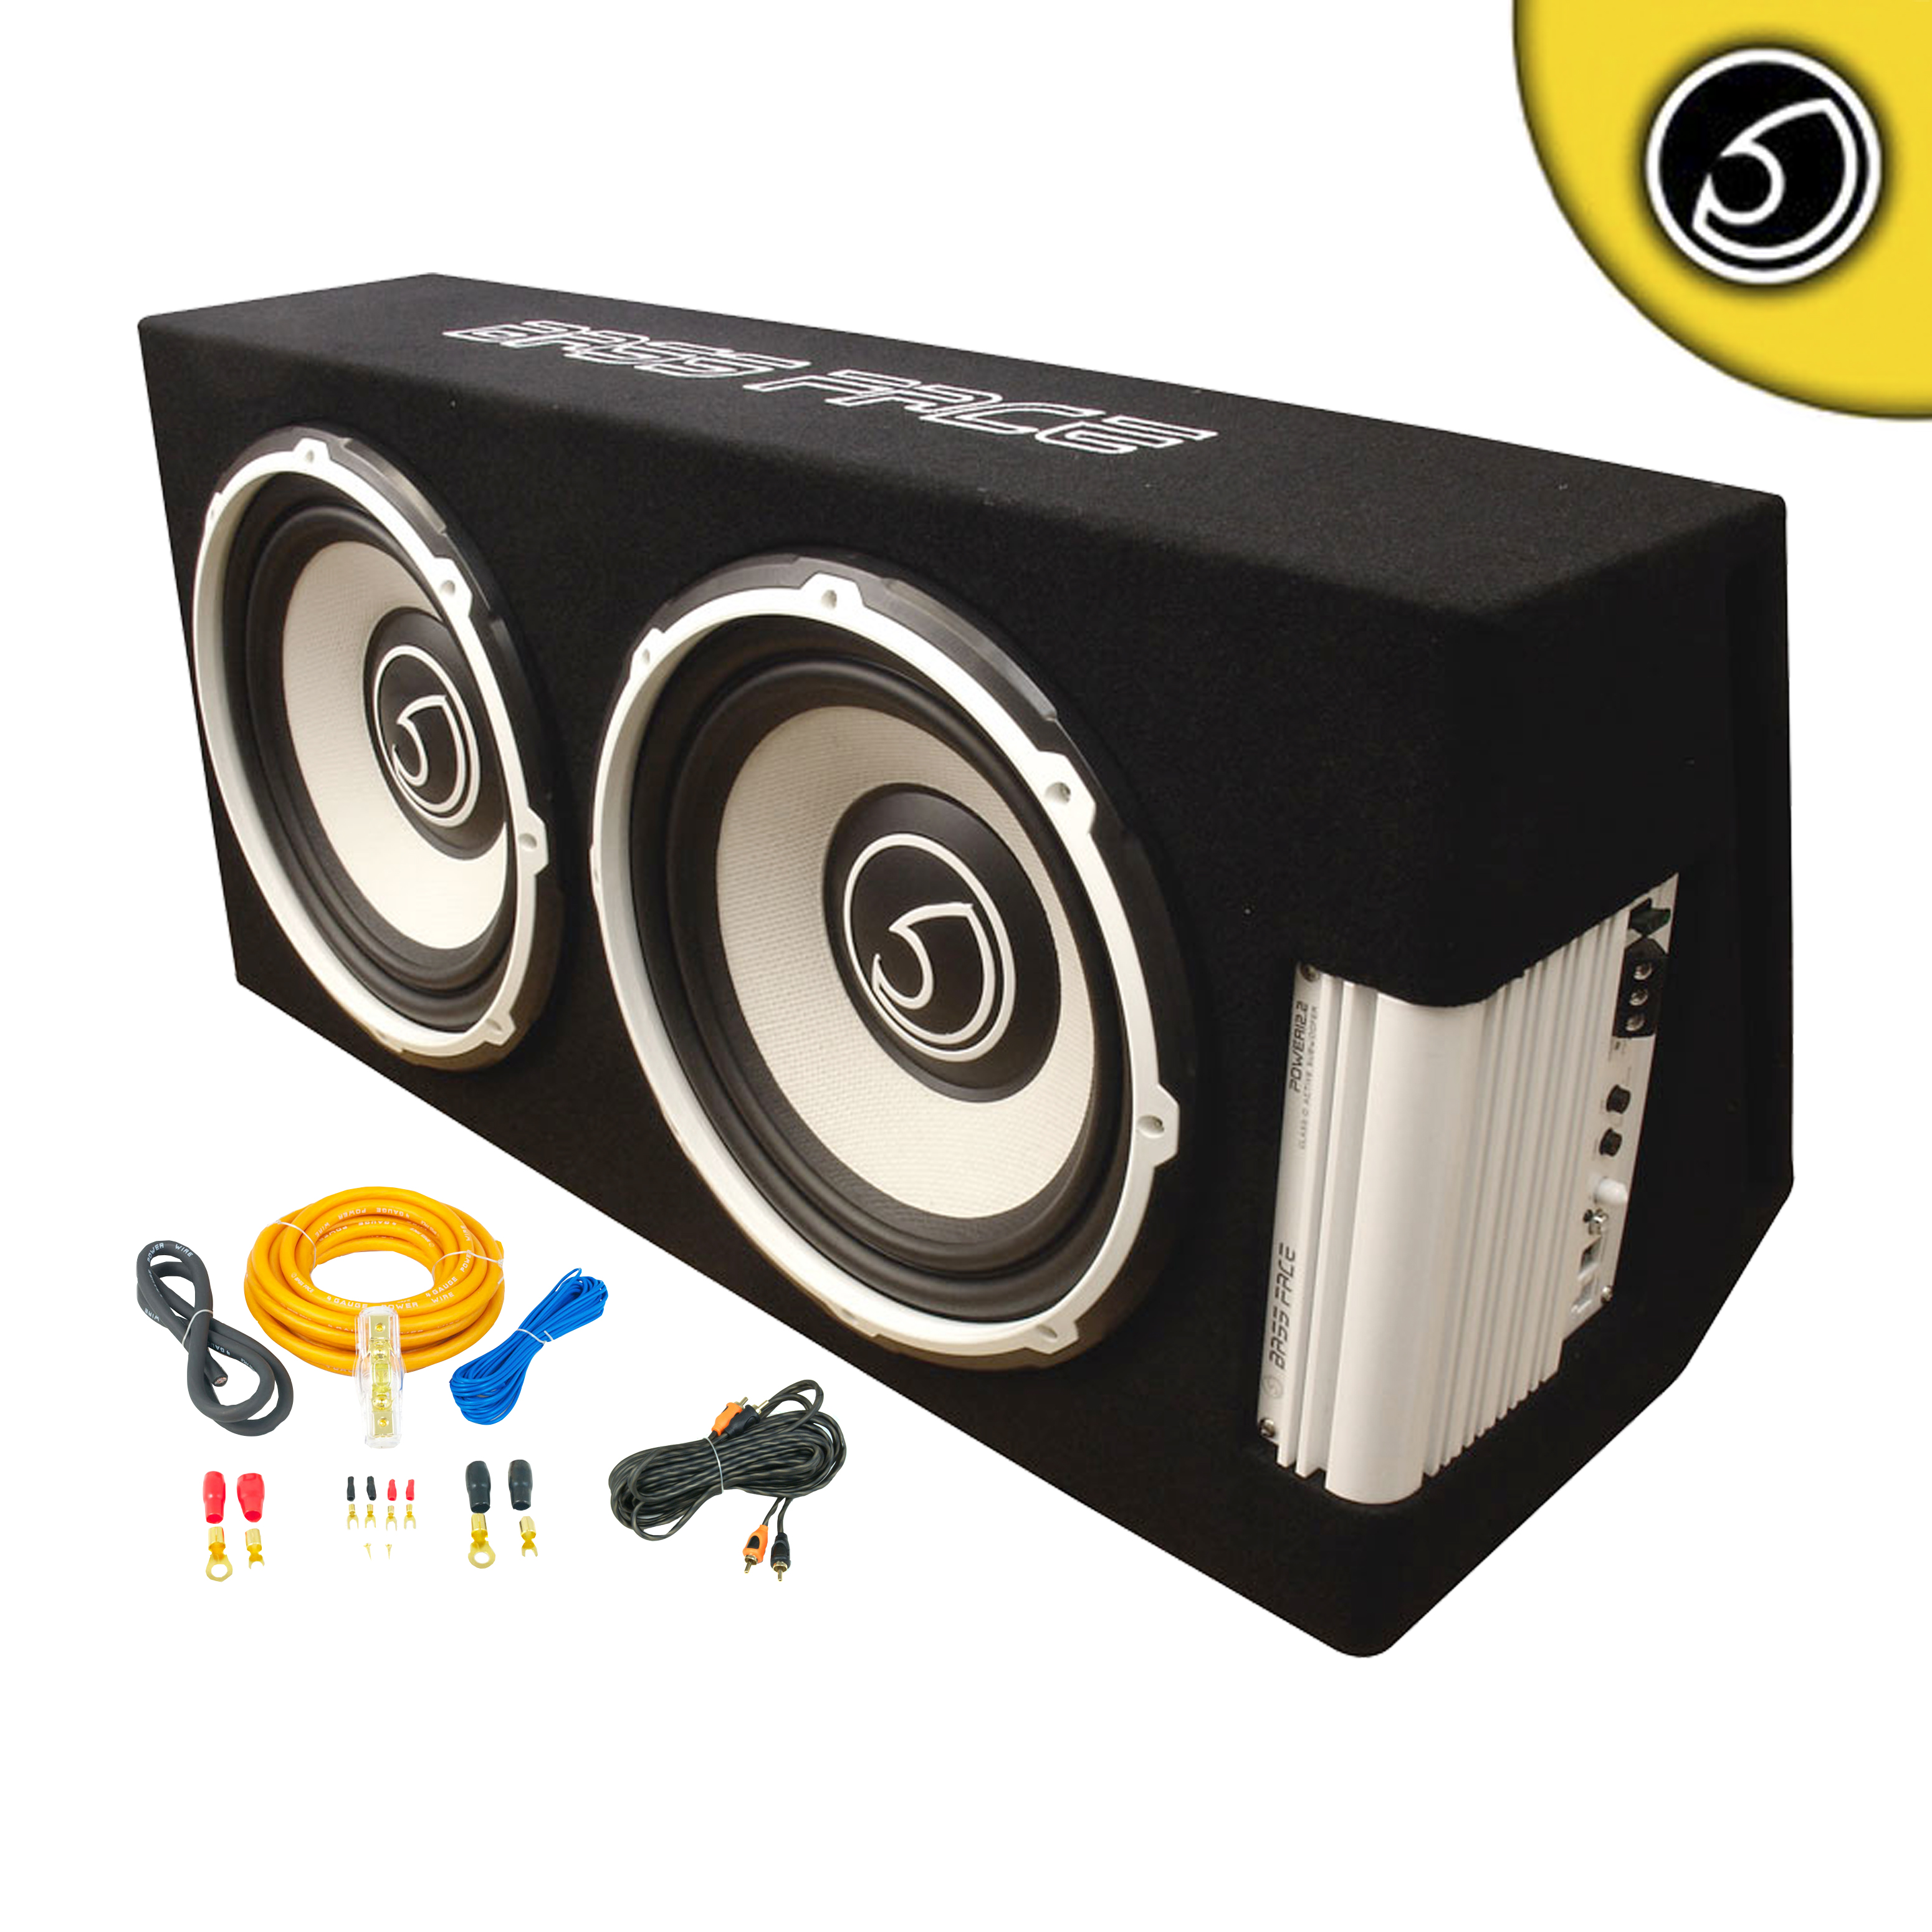 "Bassface POWER12.2. 2600w Twin 12"" Active Sub Amplifier Bass Box With 8 Gauge Power Wiring & Twisted PRCA Phono Cable"